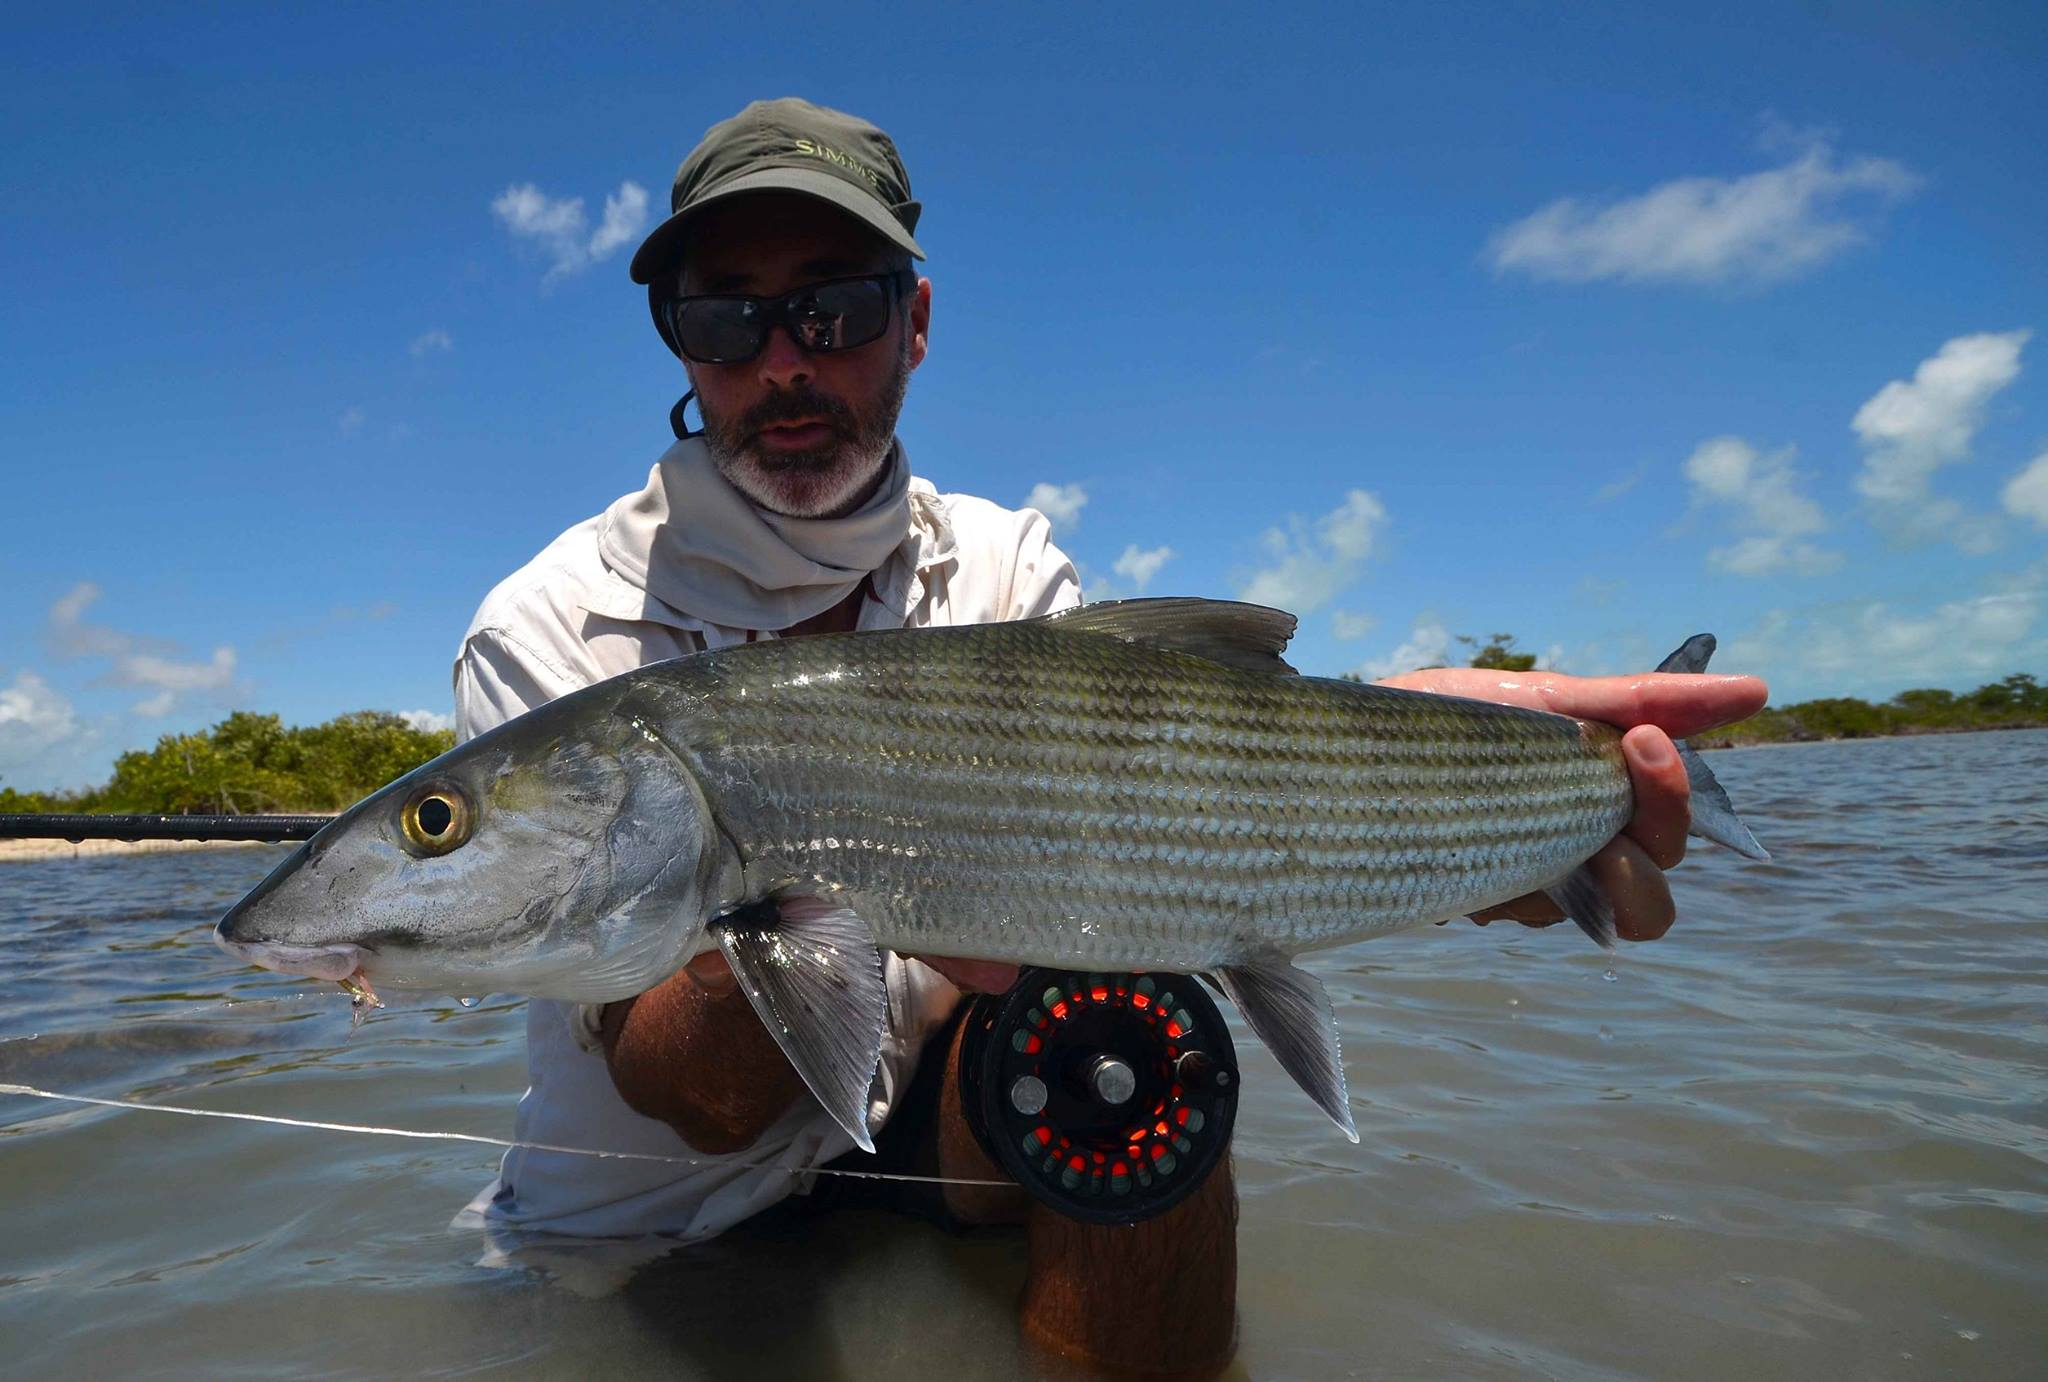 The bahamas crooked island spring 2017 availability for Fishing in the bahamas